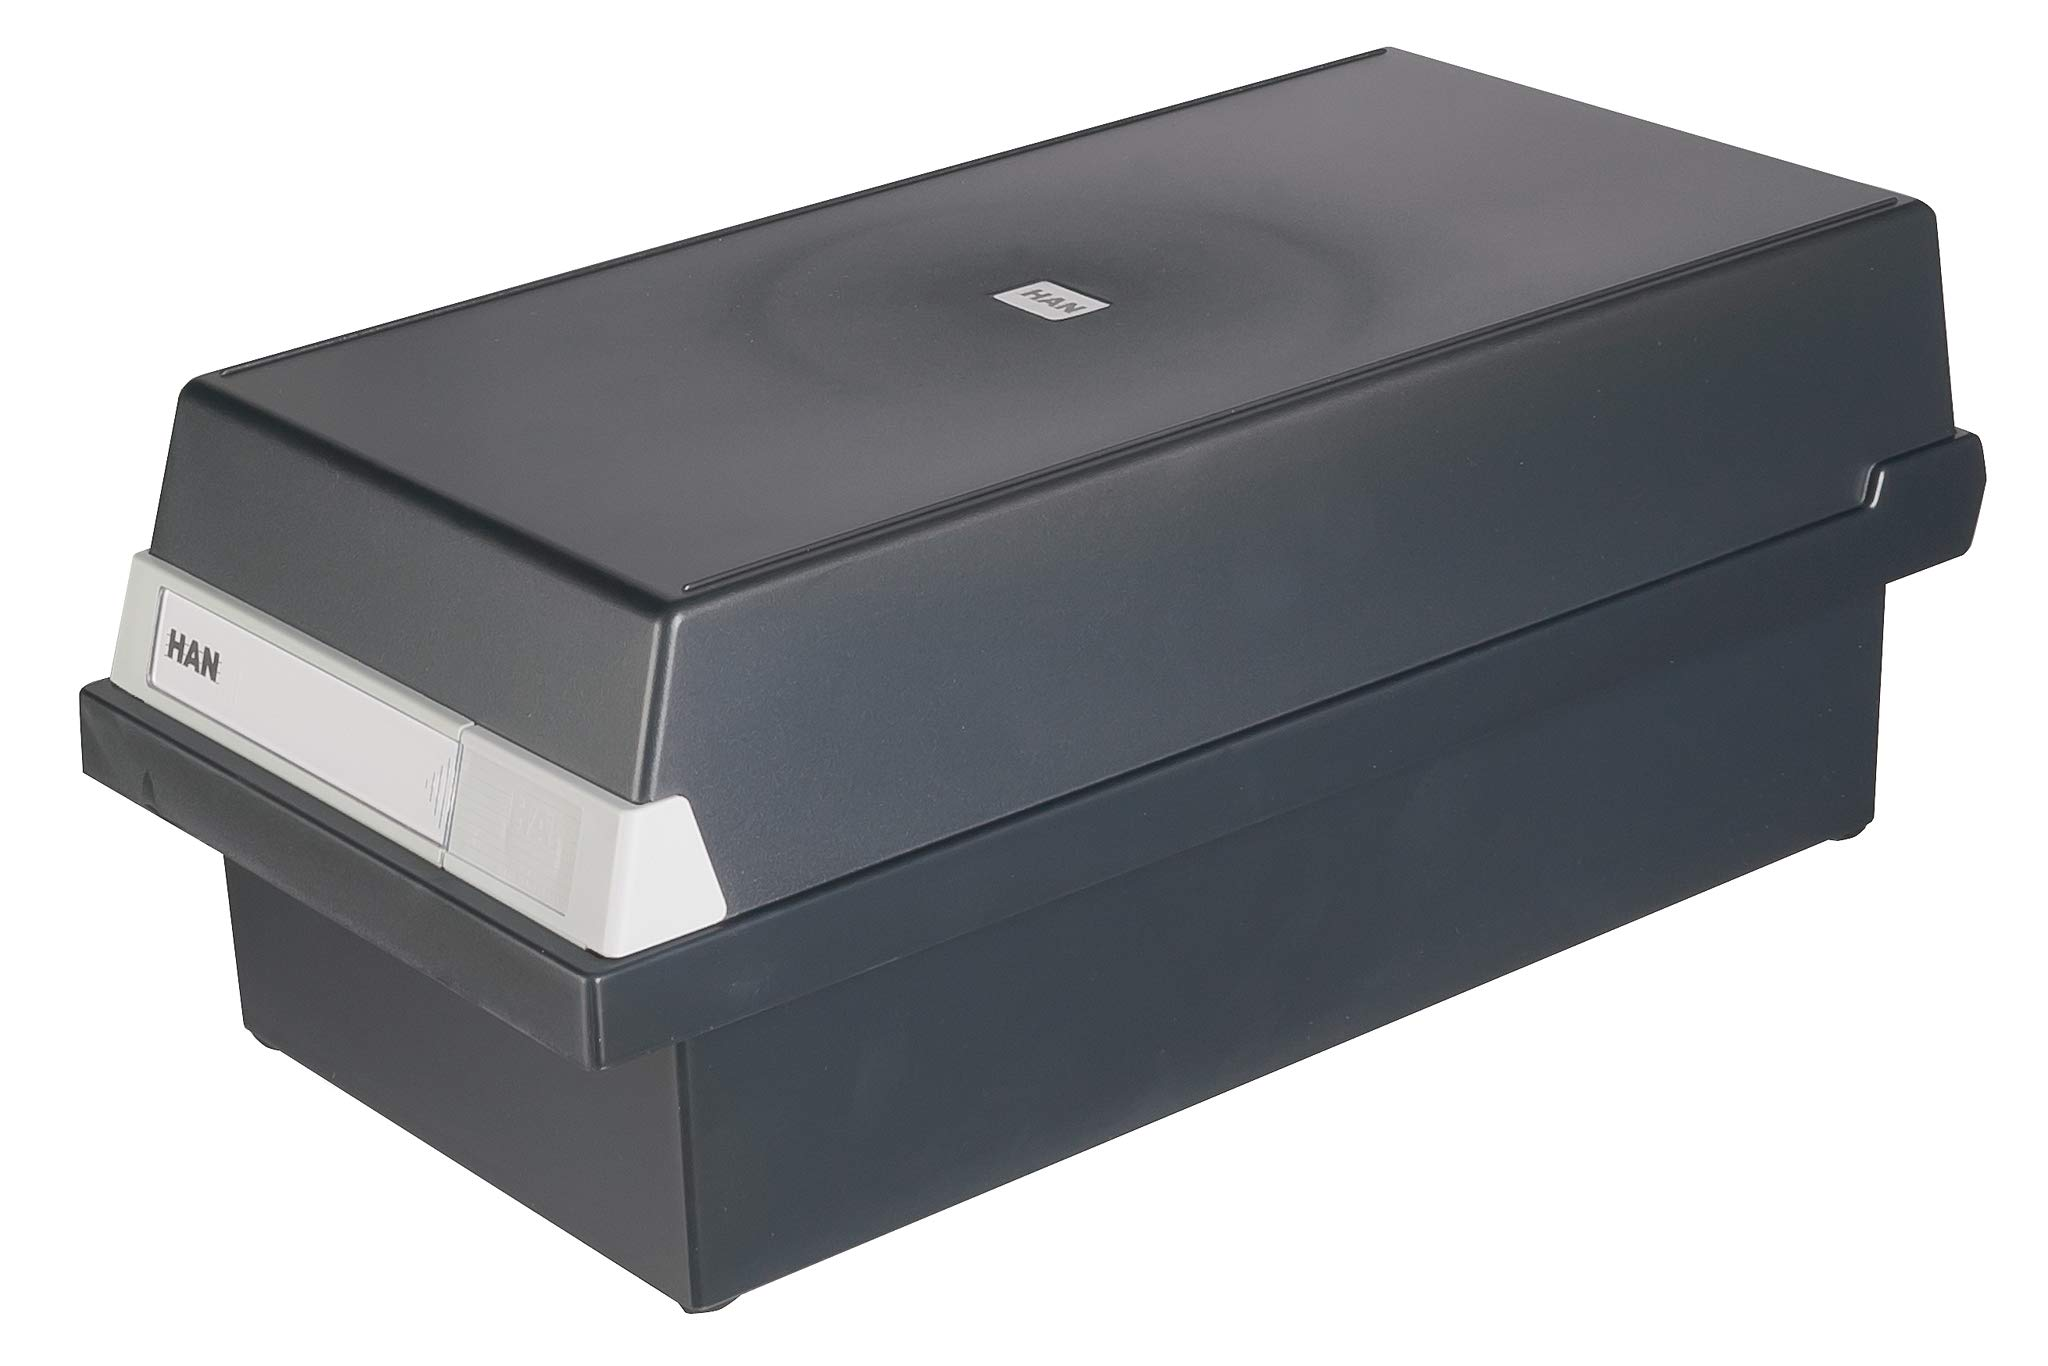 HAN 956-13, Card Filing Box A6 Landscape. Innovative, Attractive Design Holds 1,300 Cards, readjustable lid Supplied with Large Inscription Label, Black by HAN